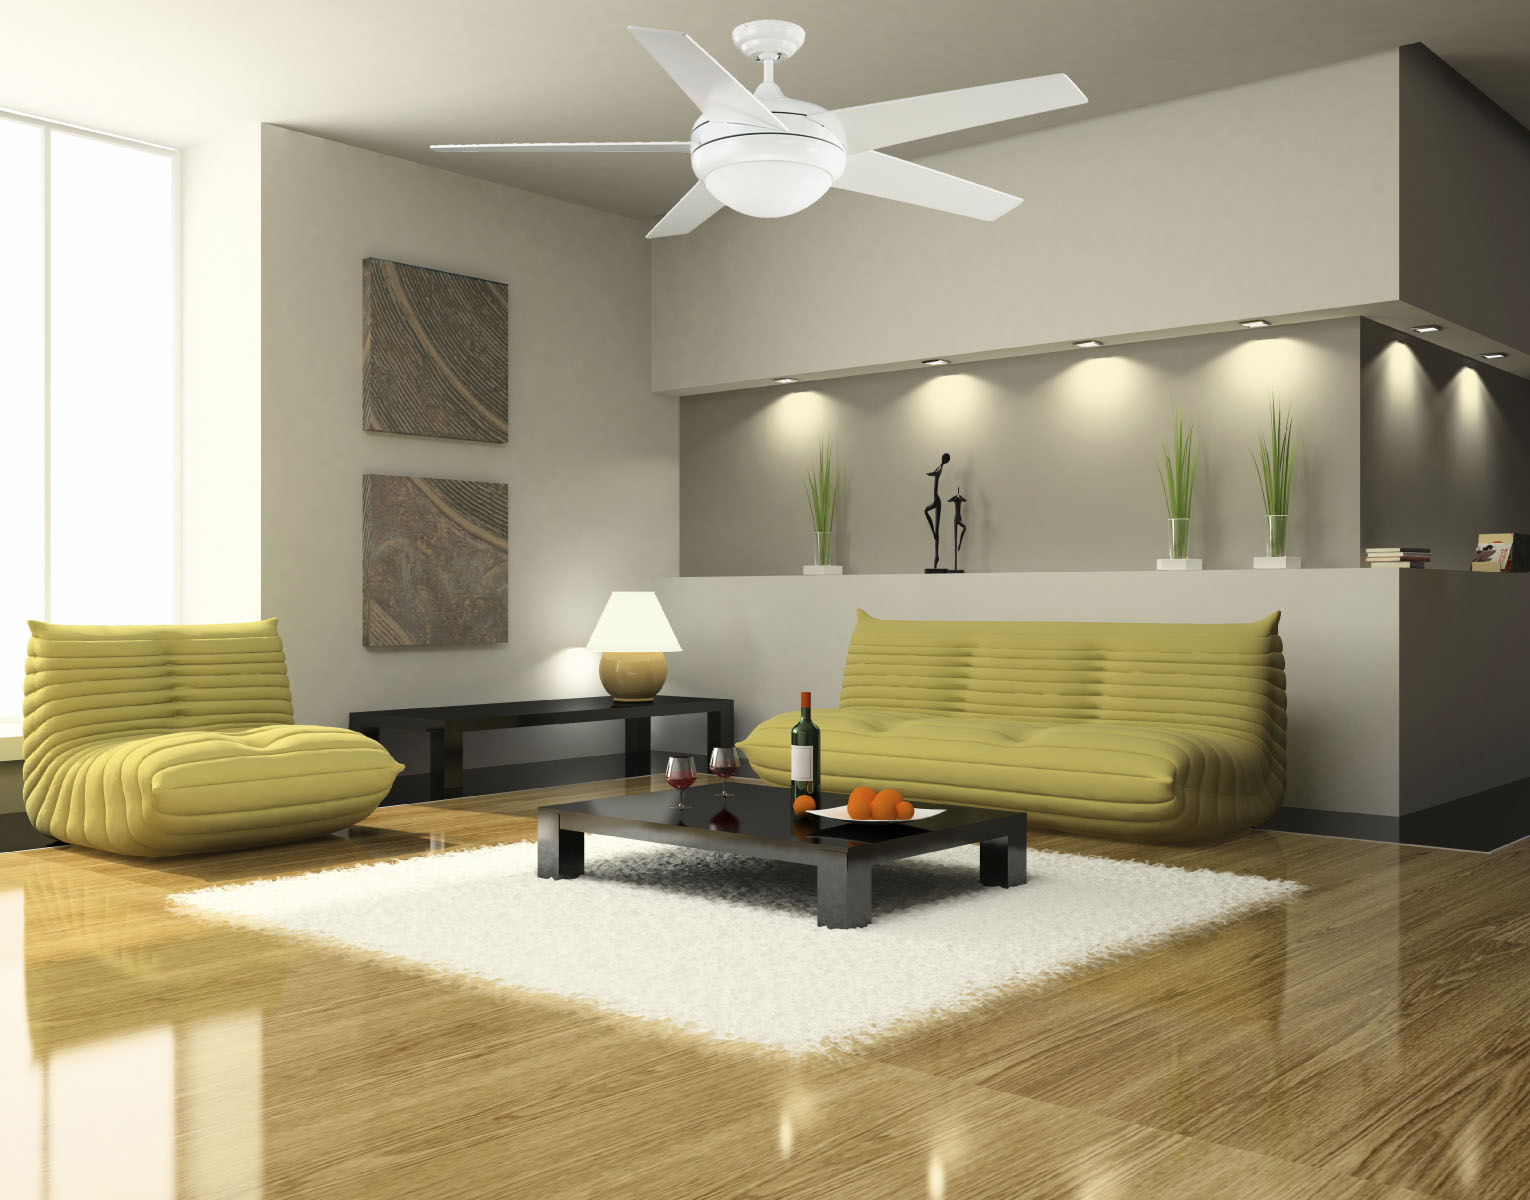 Should you hire a electrician for a ceiling fan installation